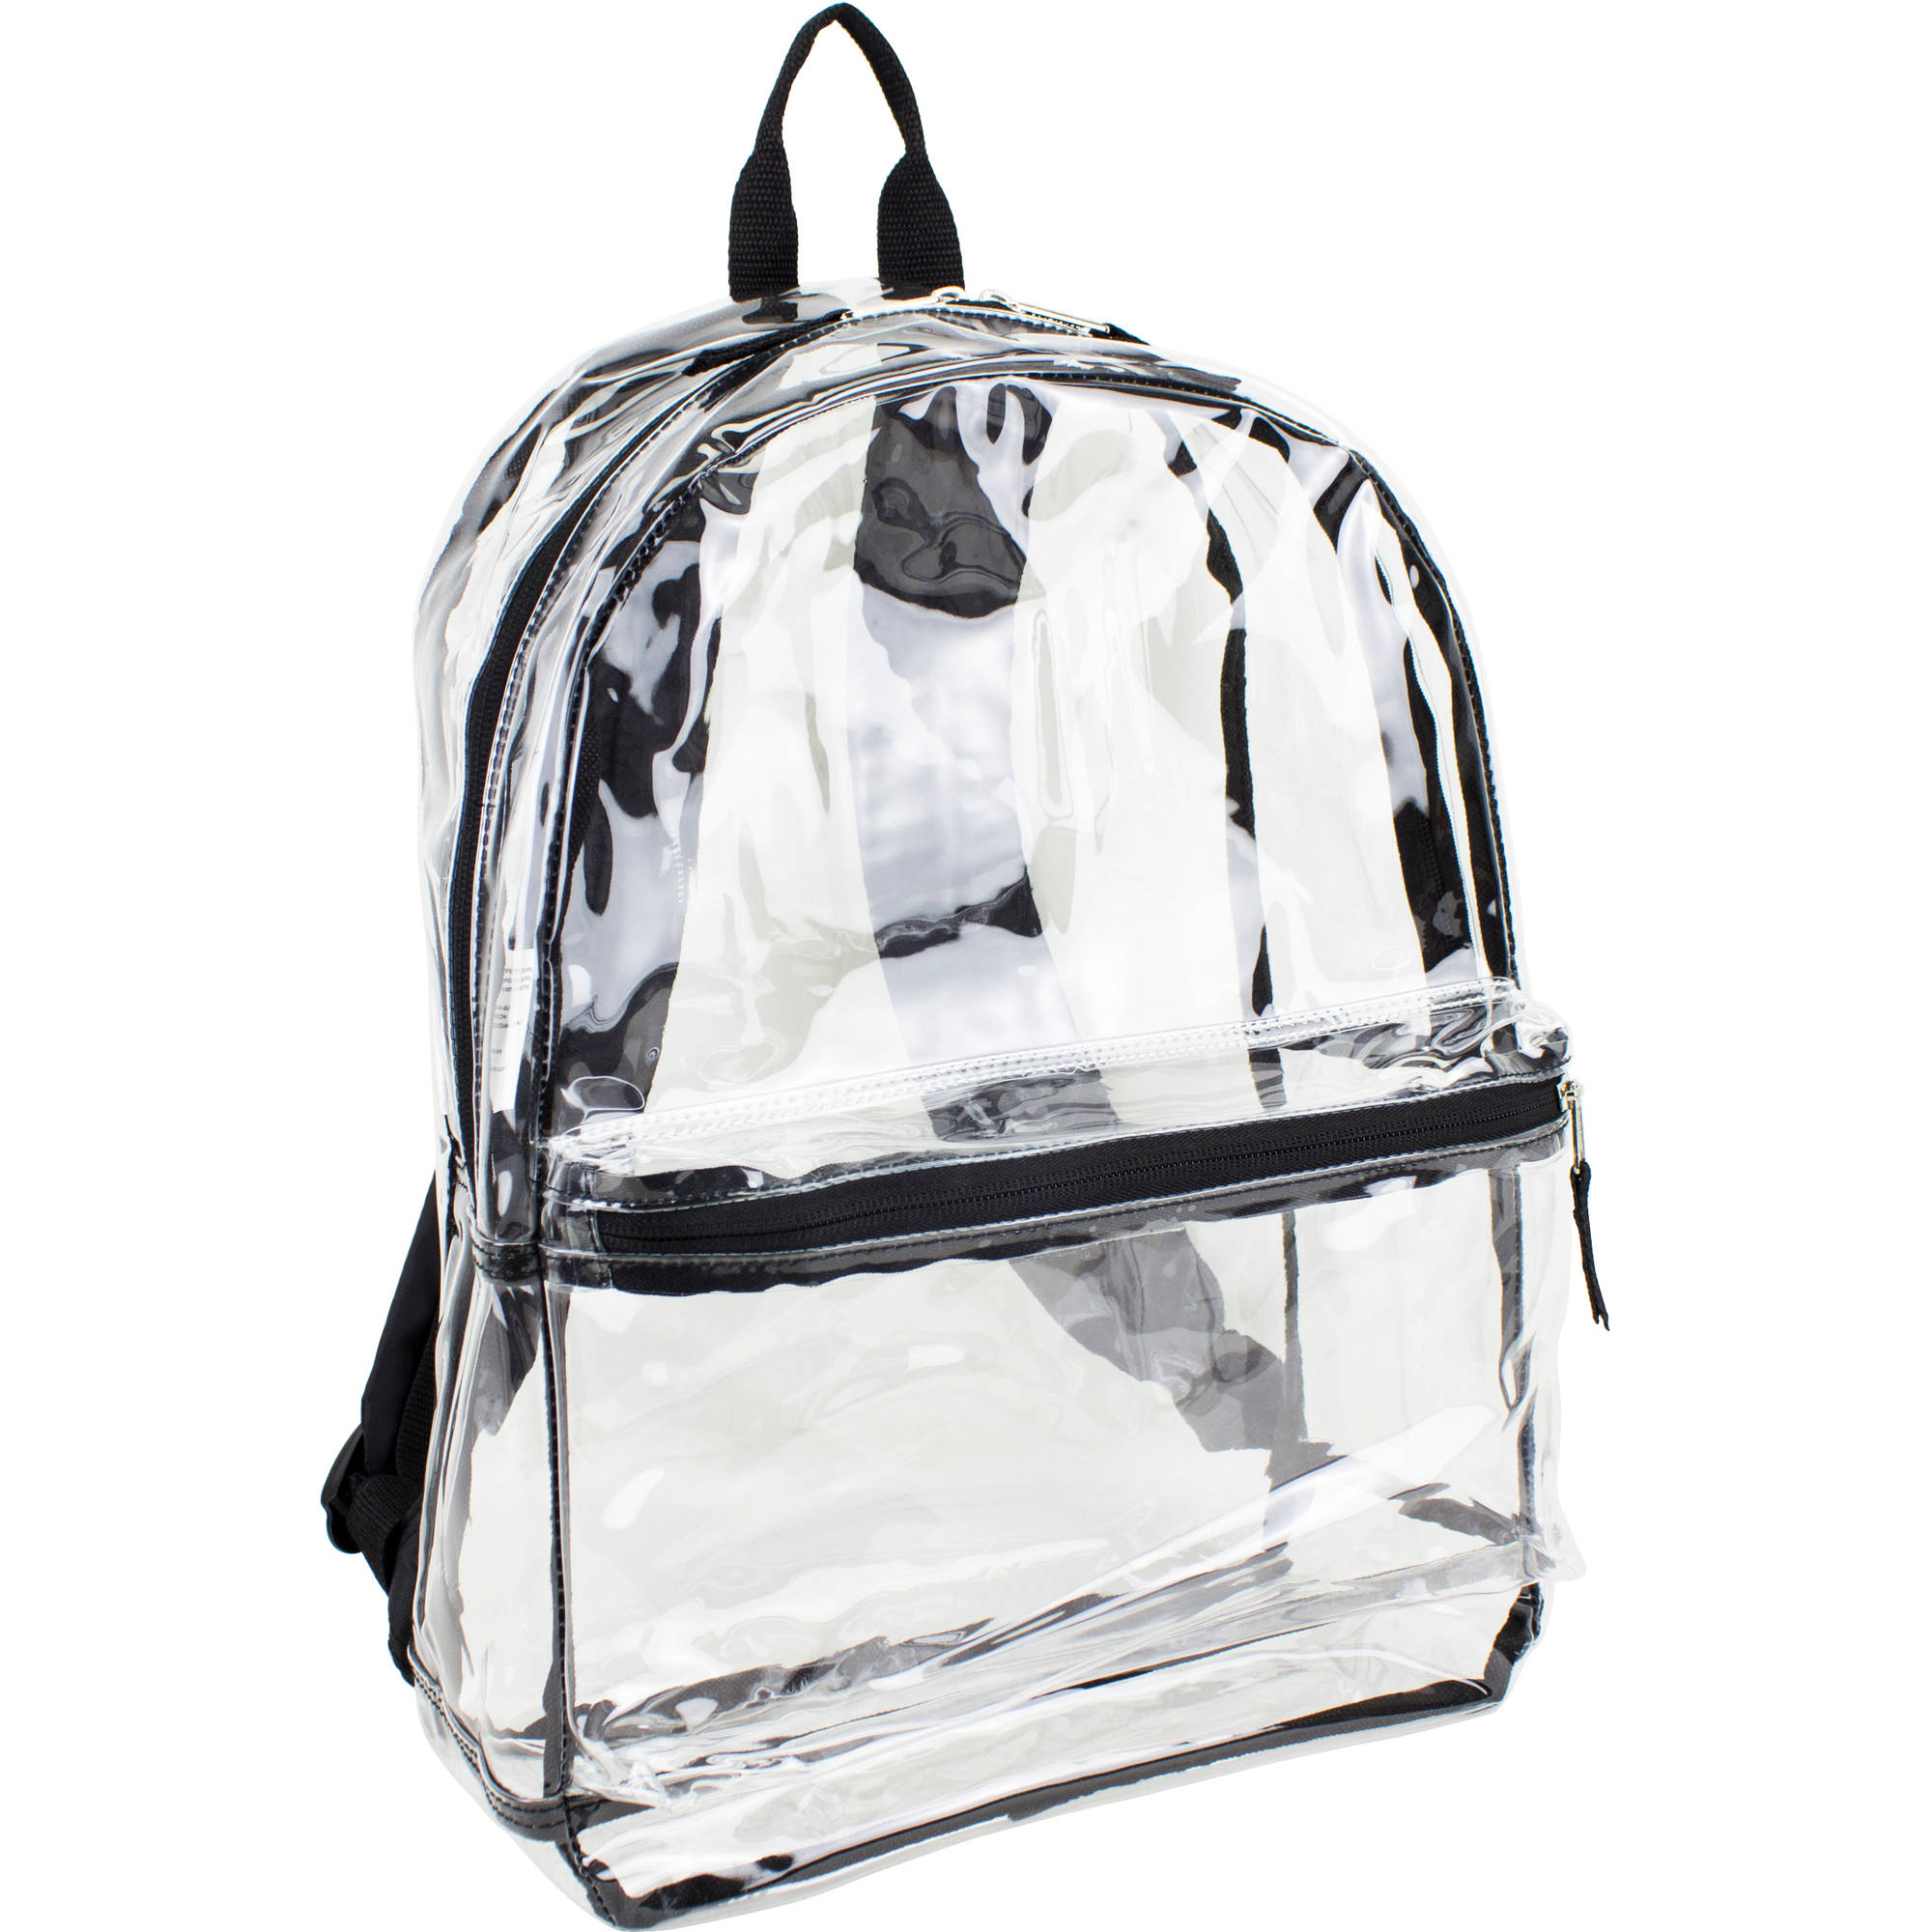 Eastsport Clear Backpack with Front Pocket and Adjustable Straps